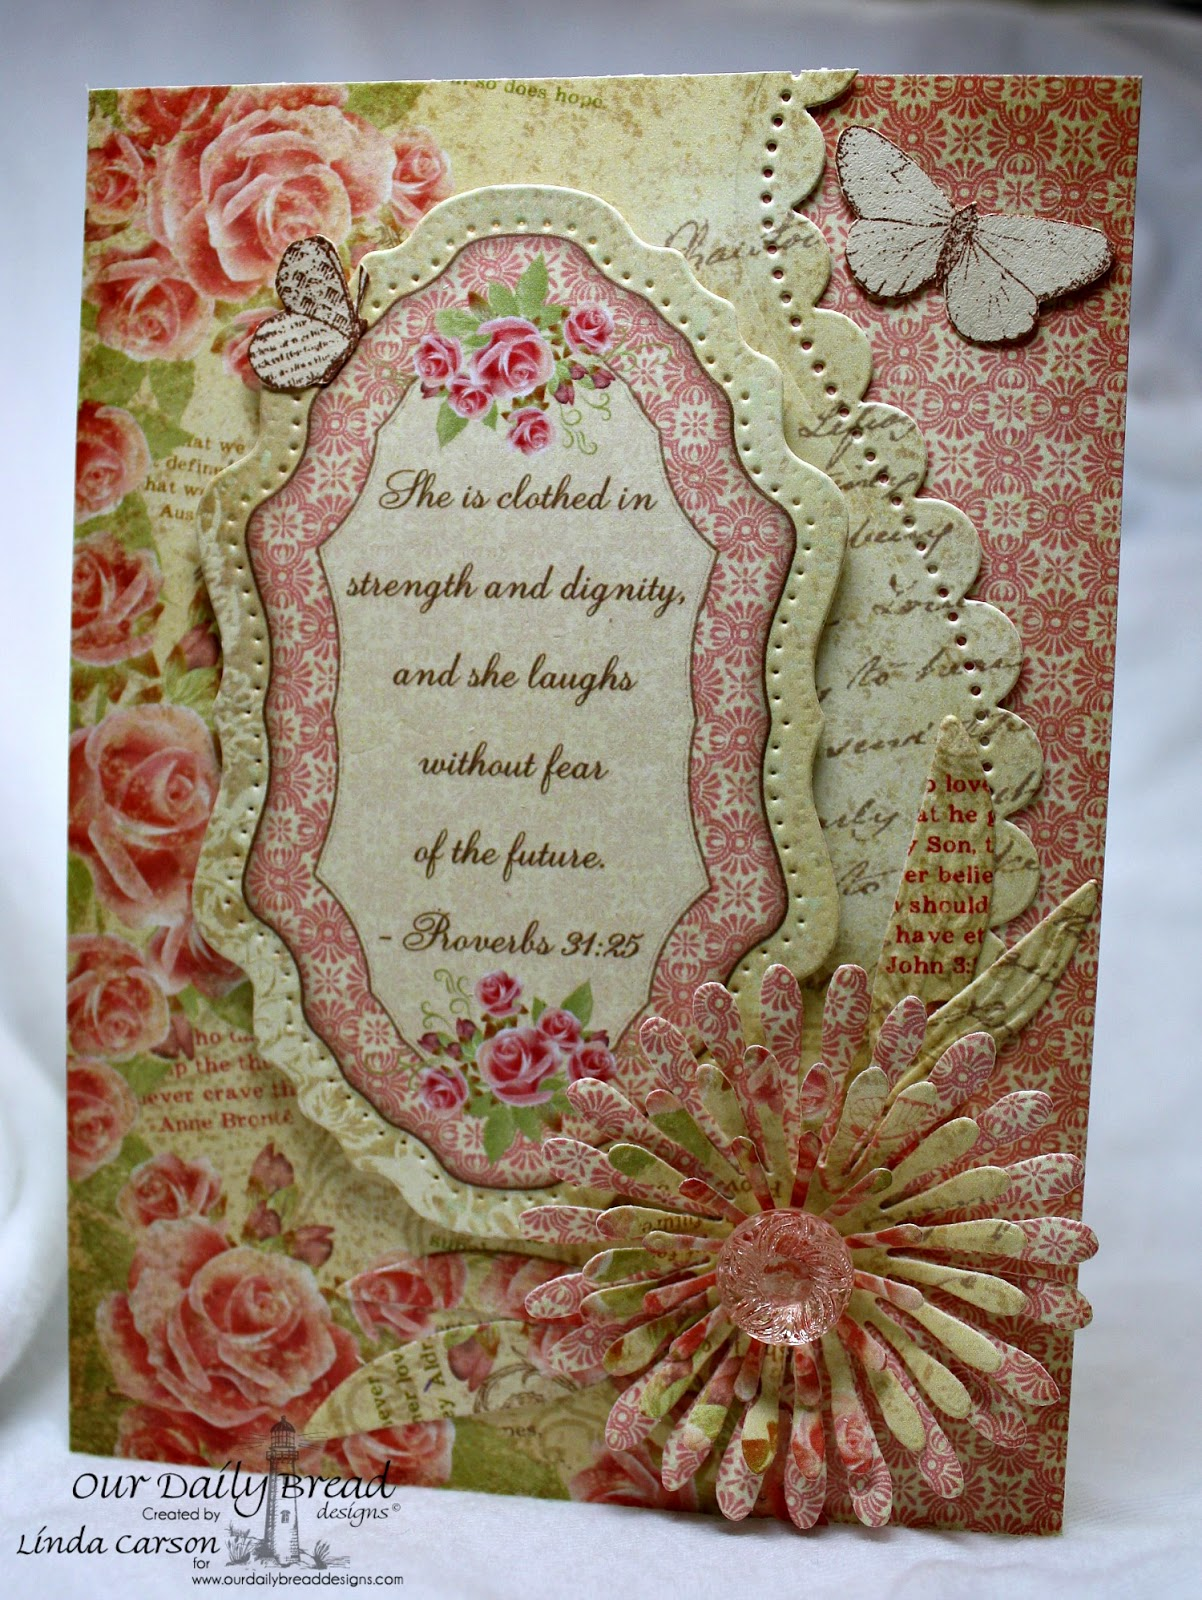 ODBD, Asters and Leaves dies, Vintage Flourish Pattern die, Blushing Rose Collection, Faith stamps, designer Linda Carson